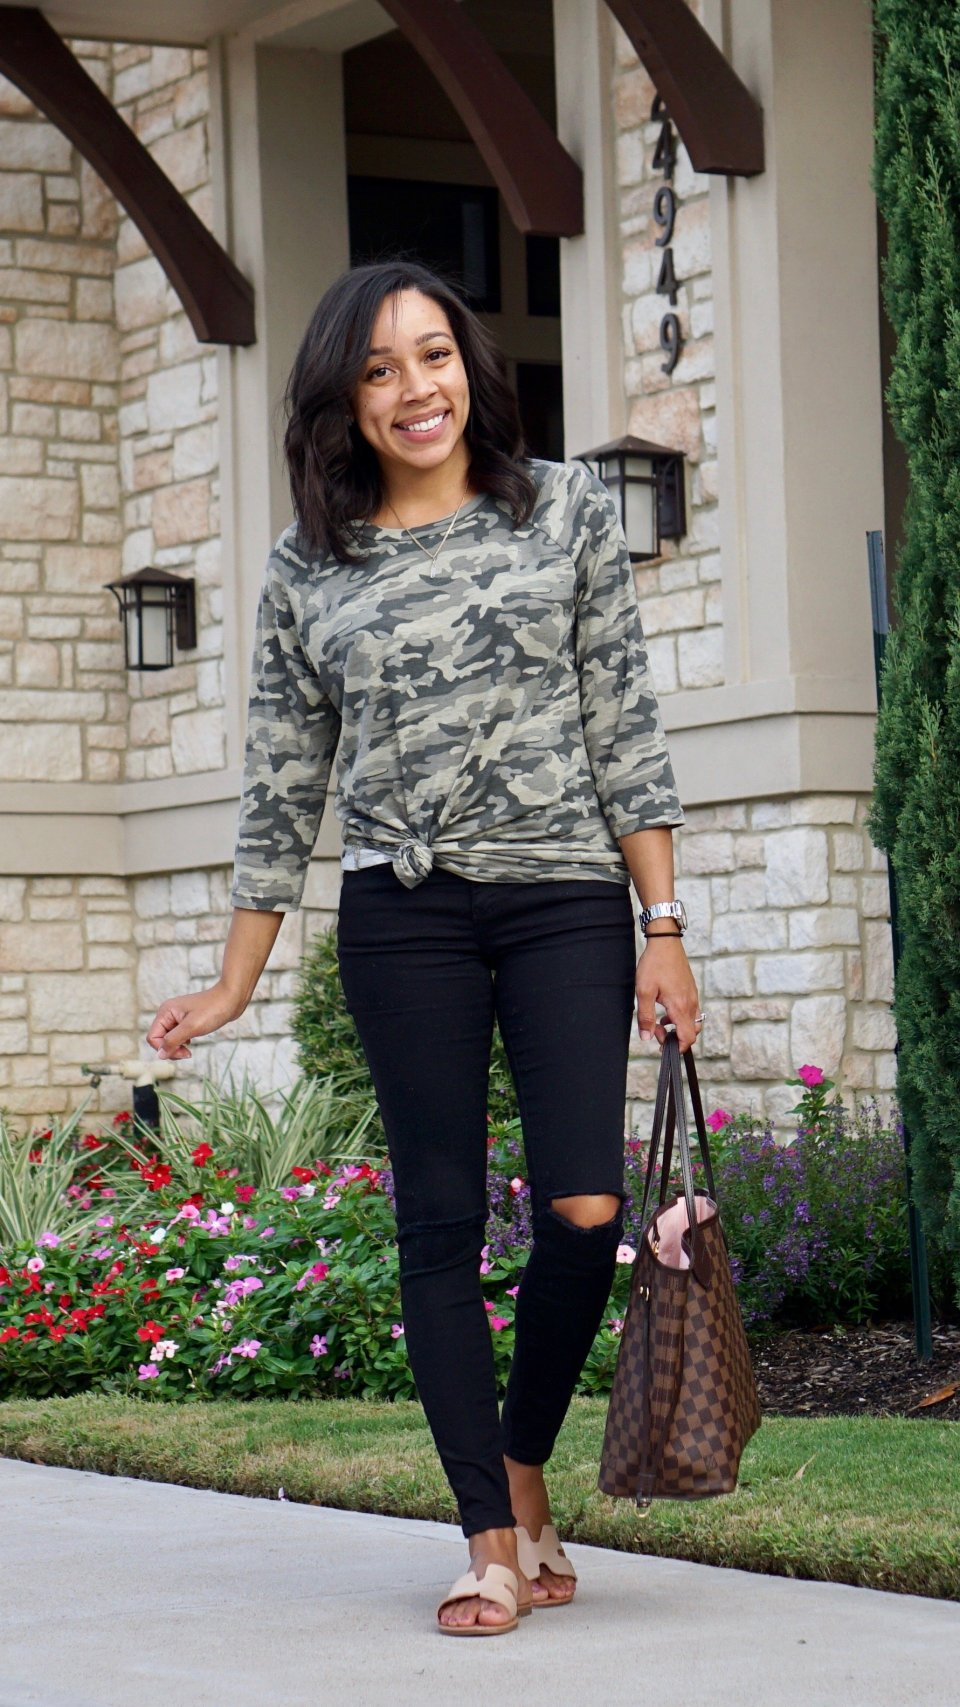 Trendy Thursday LinkUp + I'm a Little Camo Obsessed!